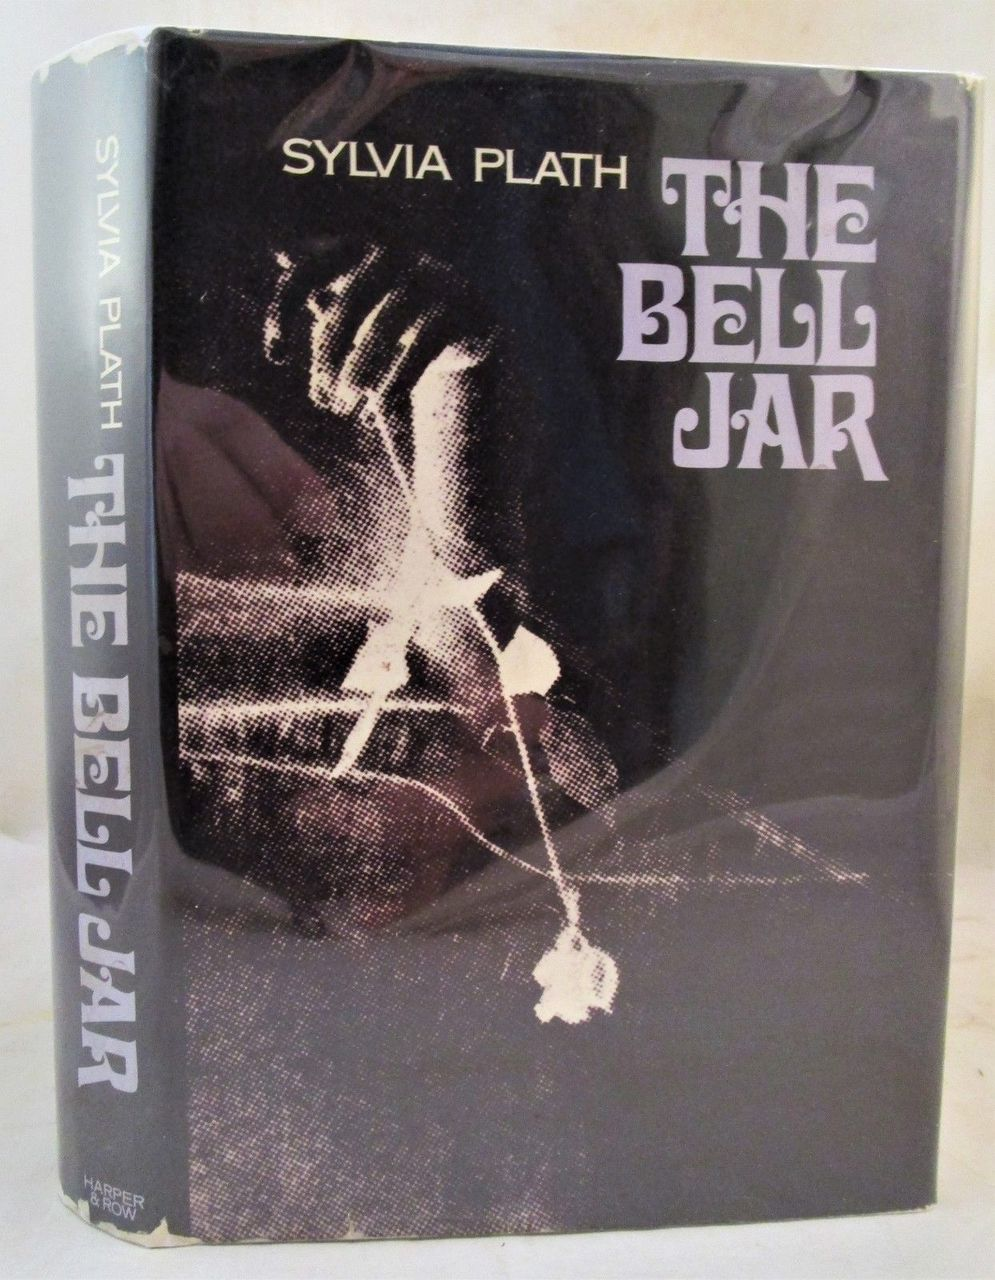 THE BELL JAR, by Sylvia Plath - 1971 [1st US Ed]